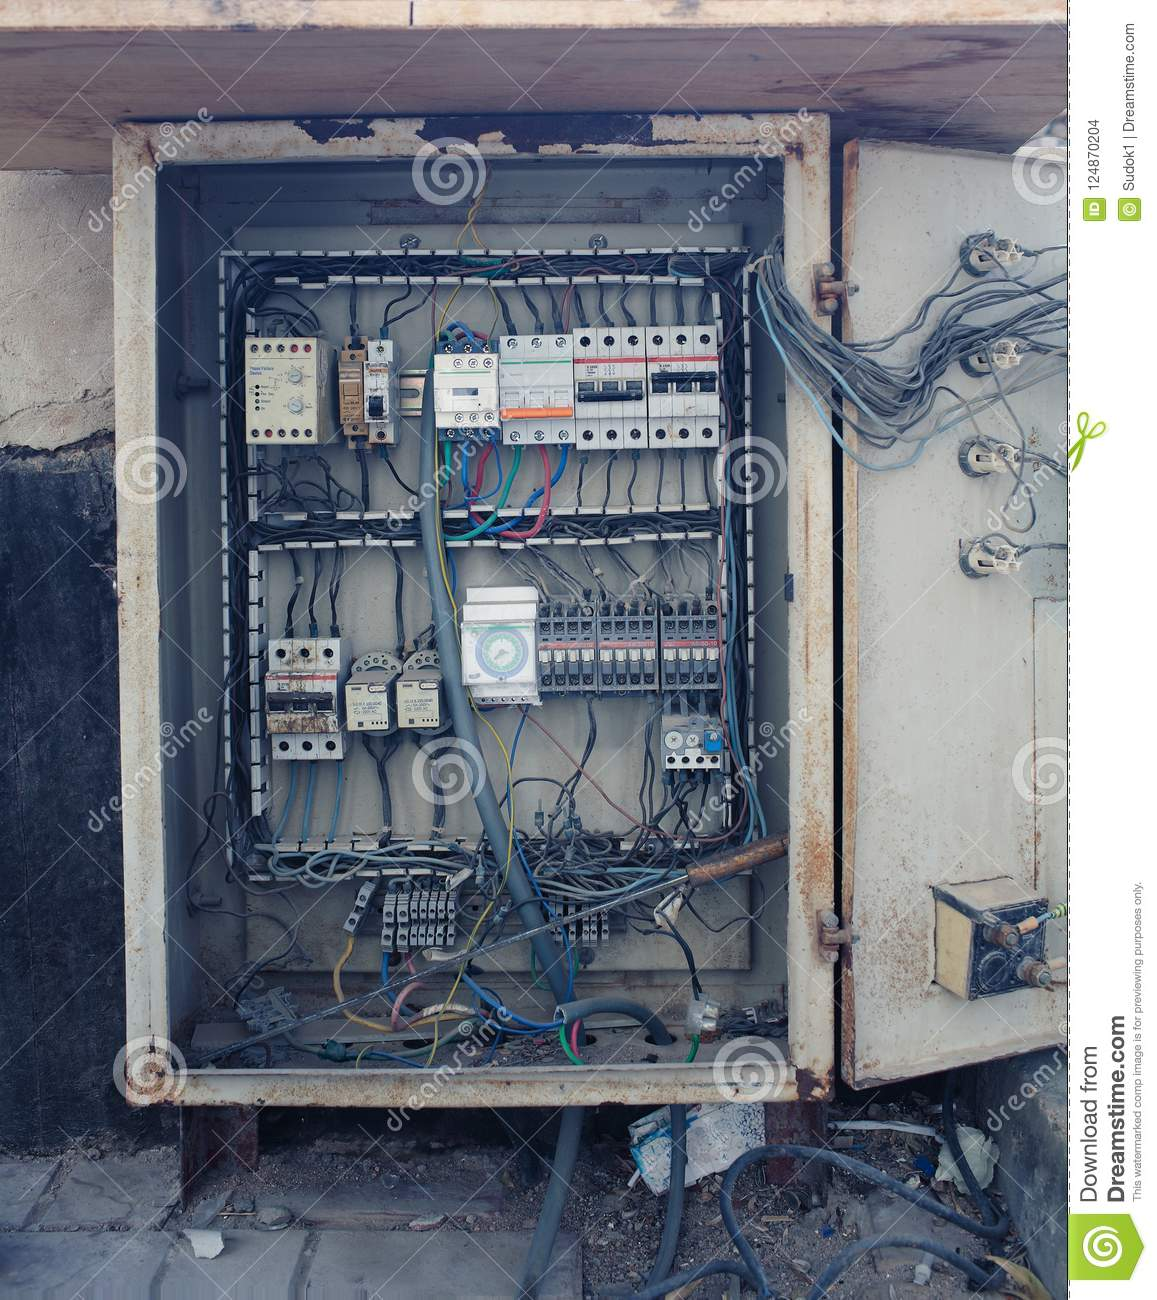 hight resolution of an old open electrical control panel box